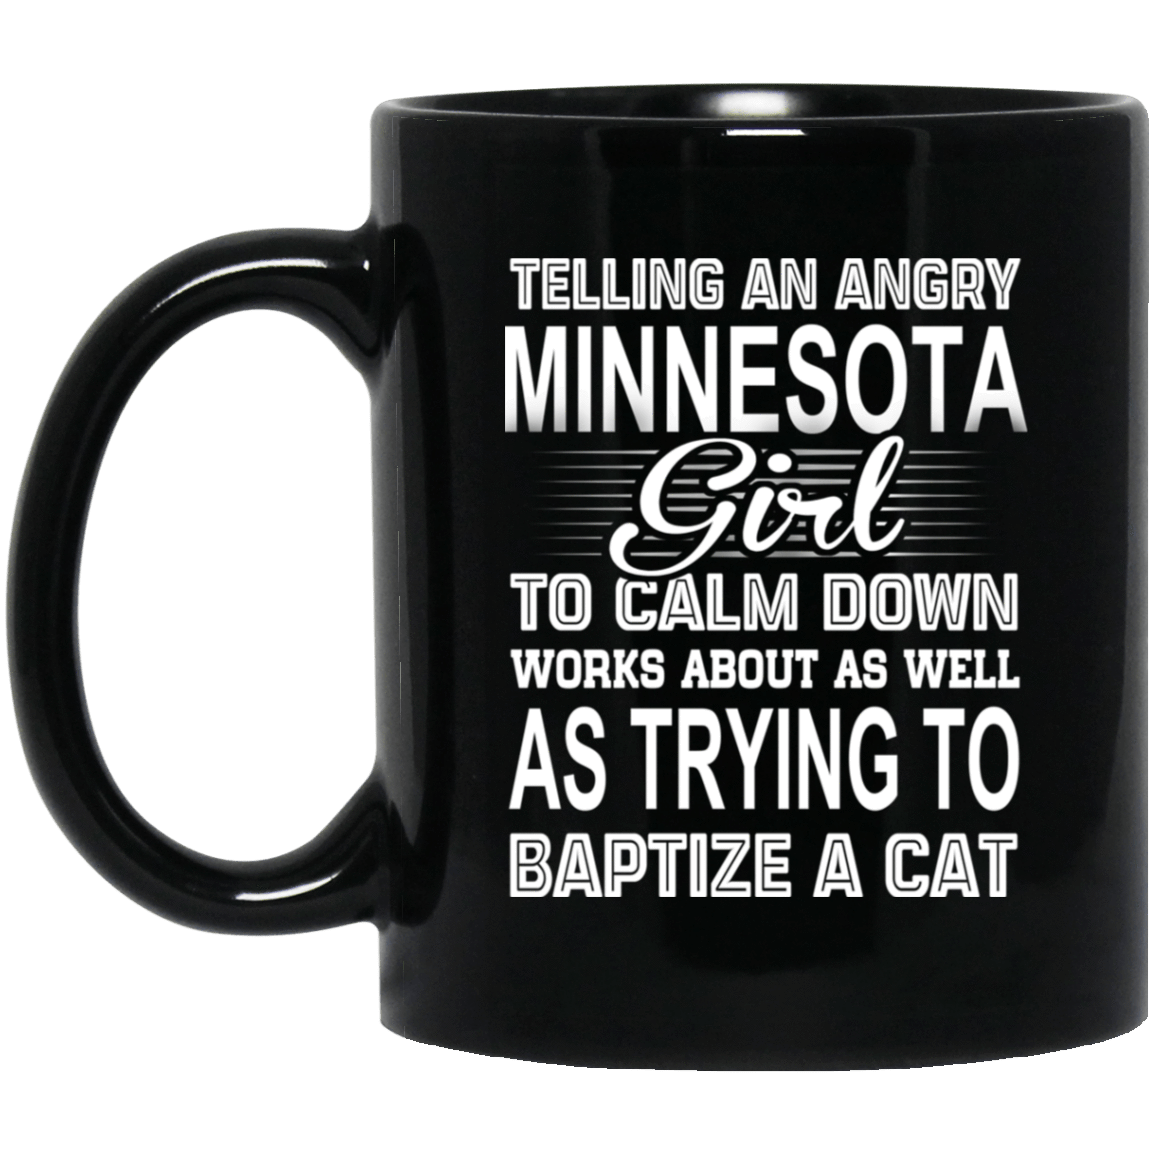 Telling An Angry Minnesota Girl To Calm Down Works About As Well As Trying To Baptize A Cat Mug 1065-10181-76151631-49307 - Tee Ript